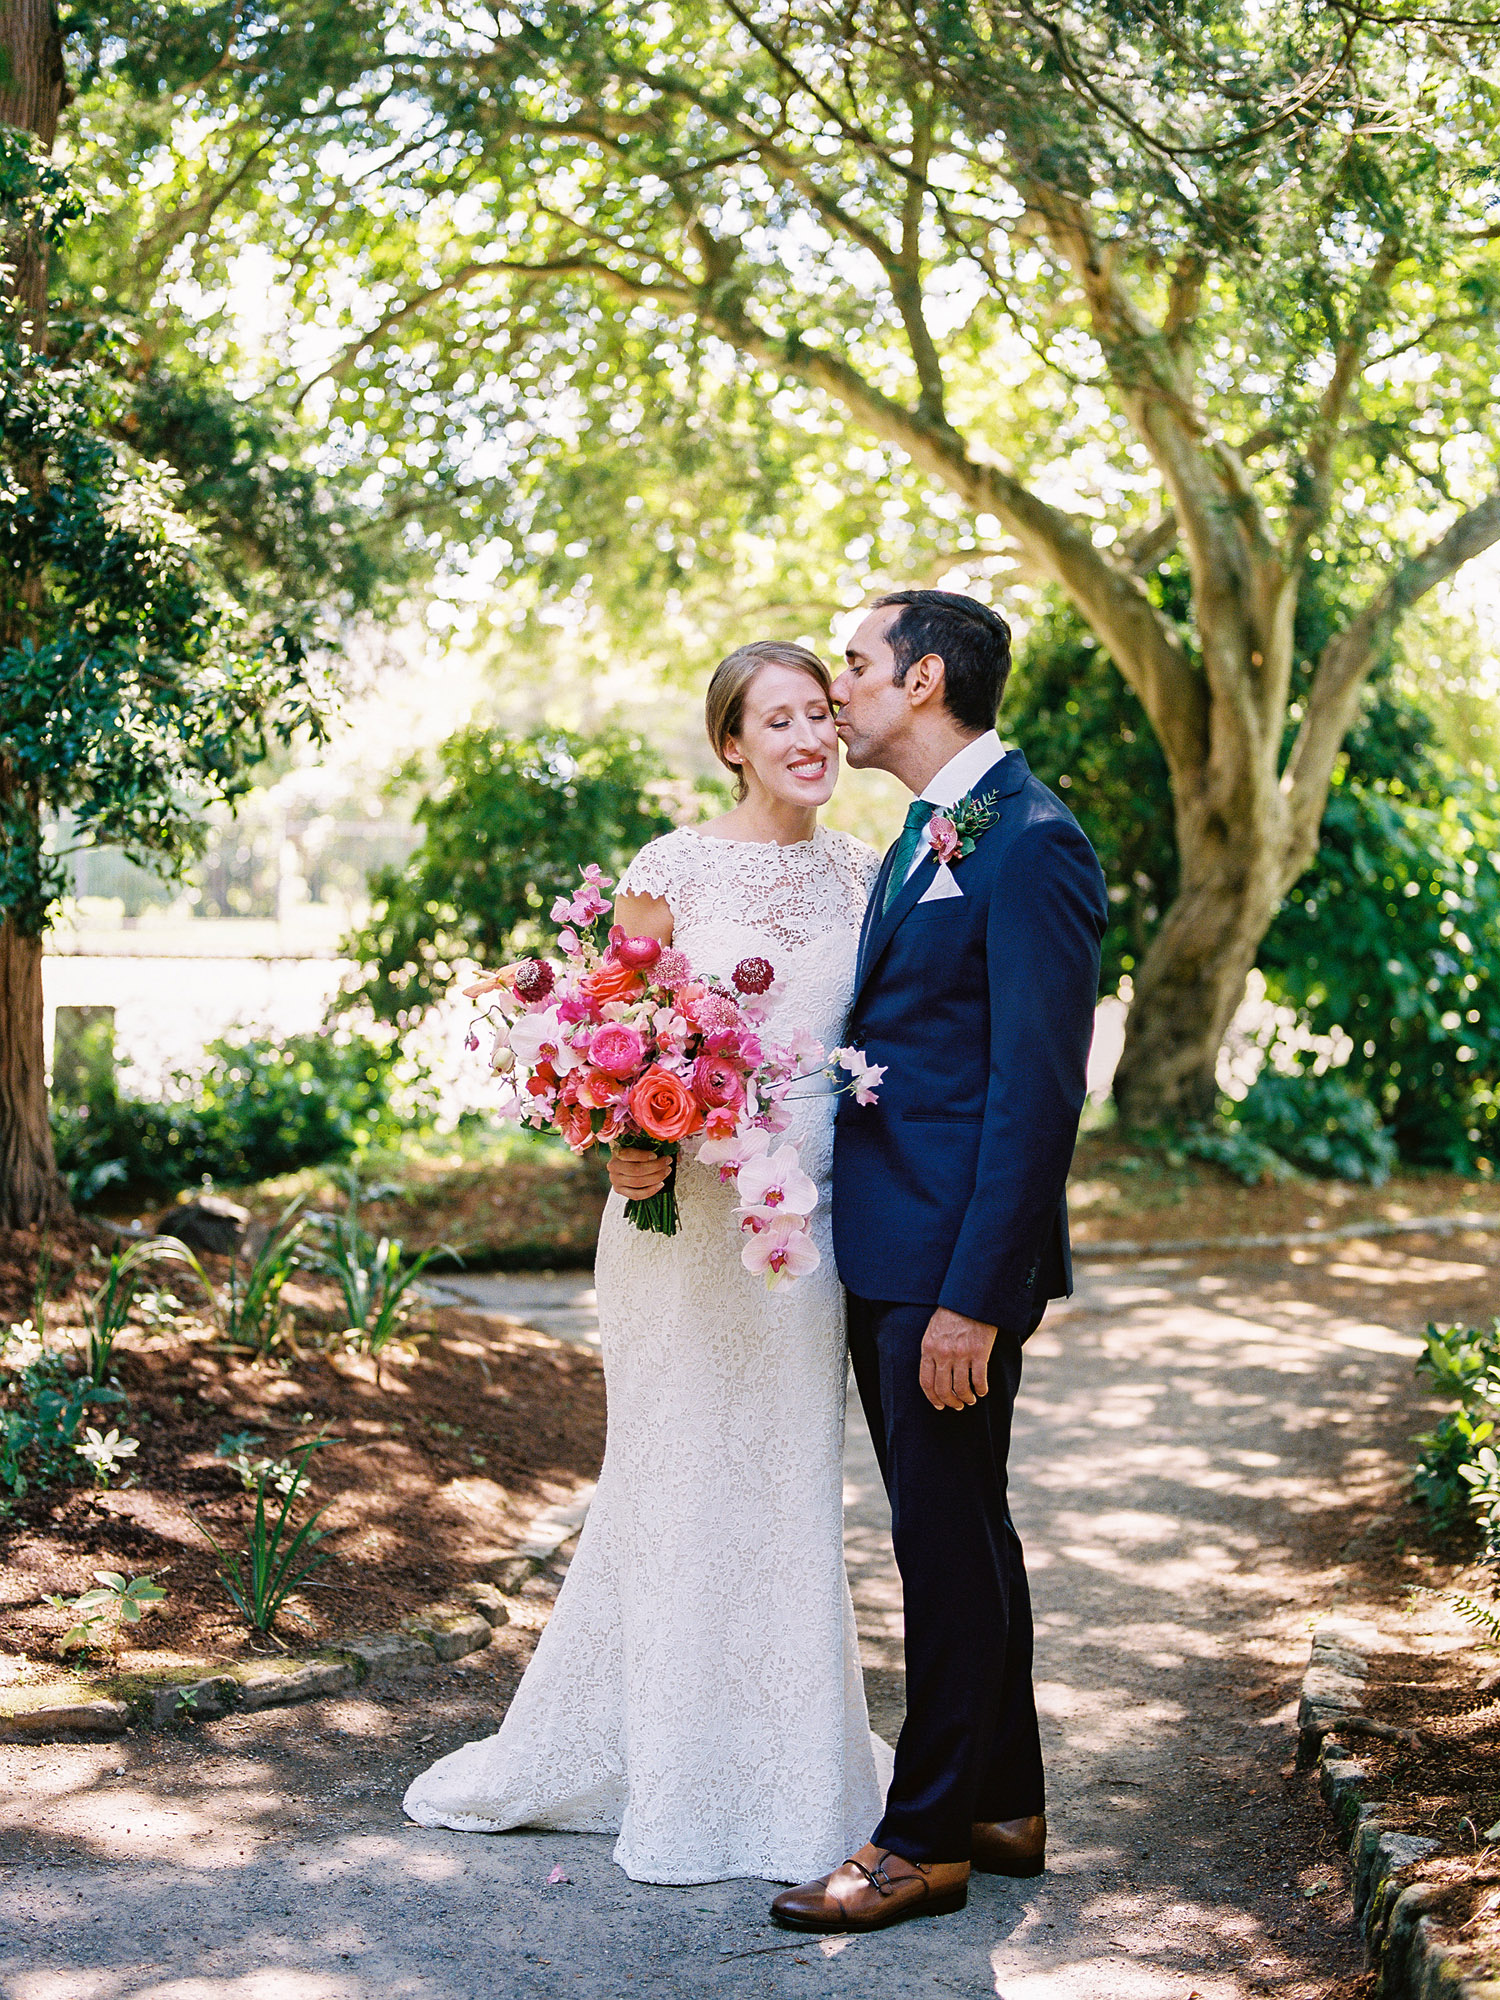 Seattle Parsons Garden Wedding Photography by Alexandra Knight Photography.jpg